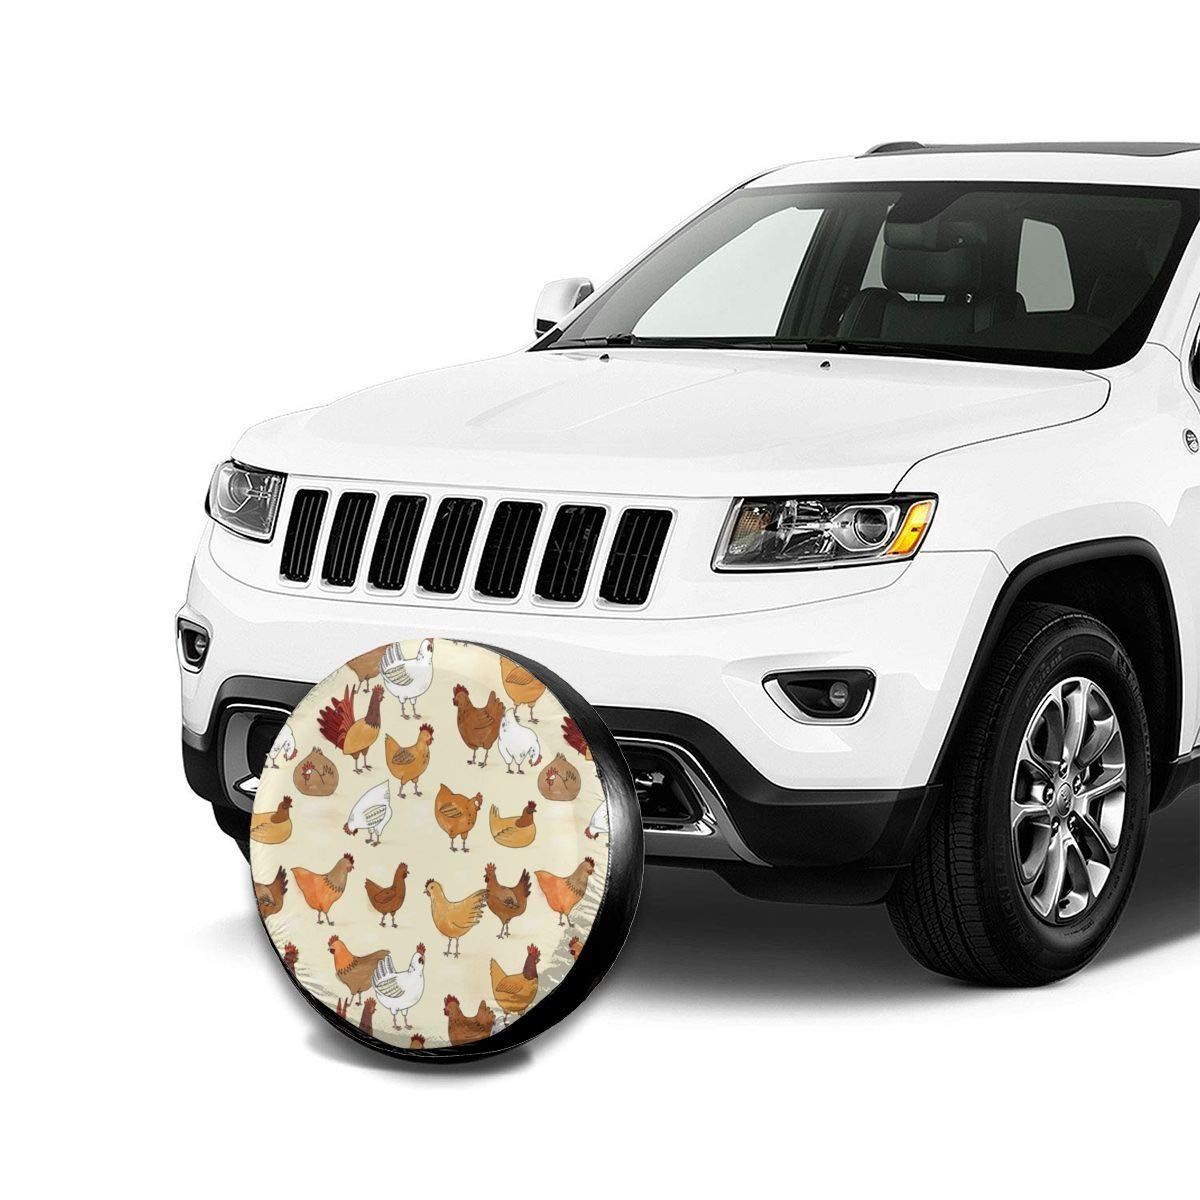 Bag hat Chicken Tire Cover Polyester Universal Spare Wheel Tire Cover Wheel Covers Jeep Trailer RV SUV Truck Camper Travel Trailer Accessories 15 inch